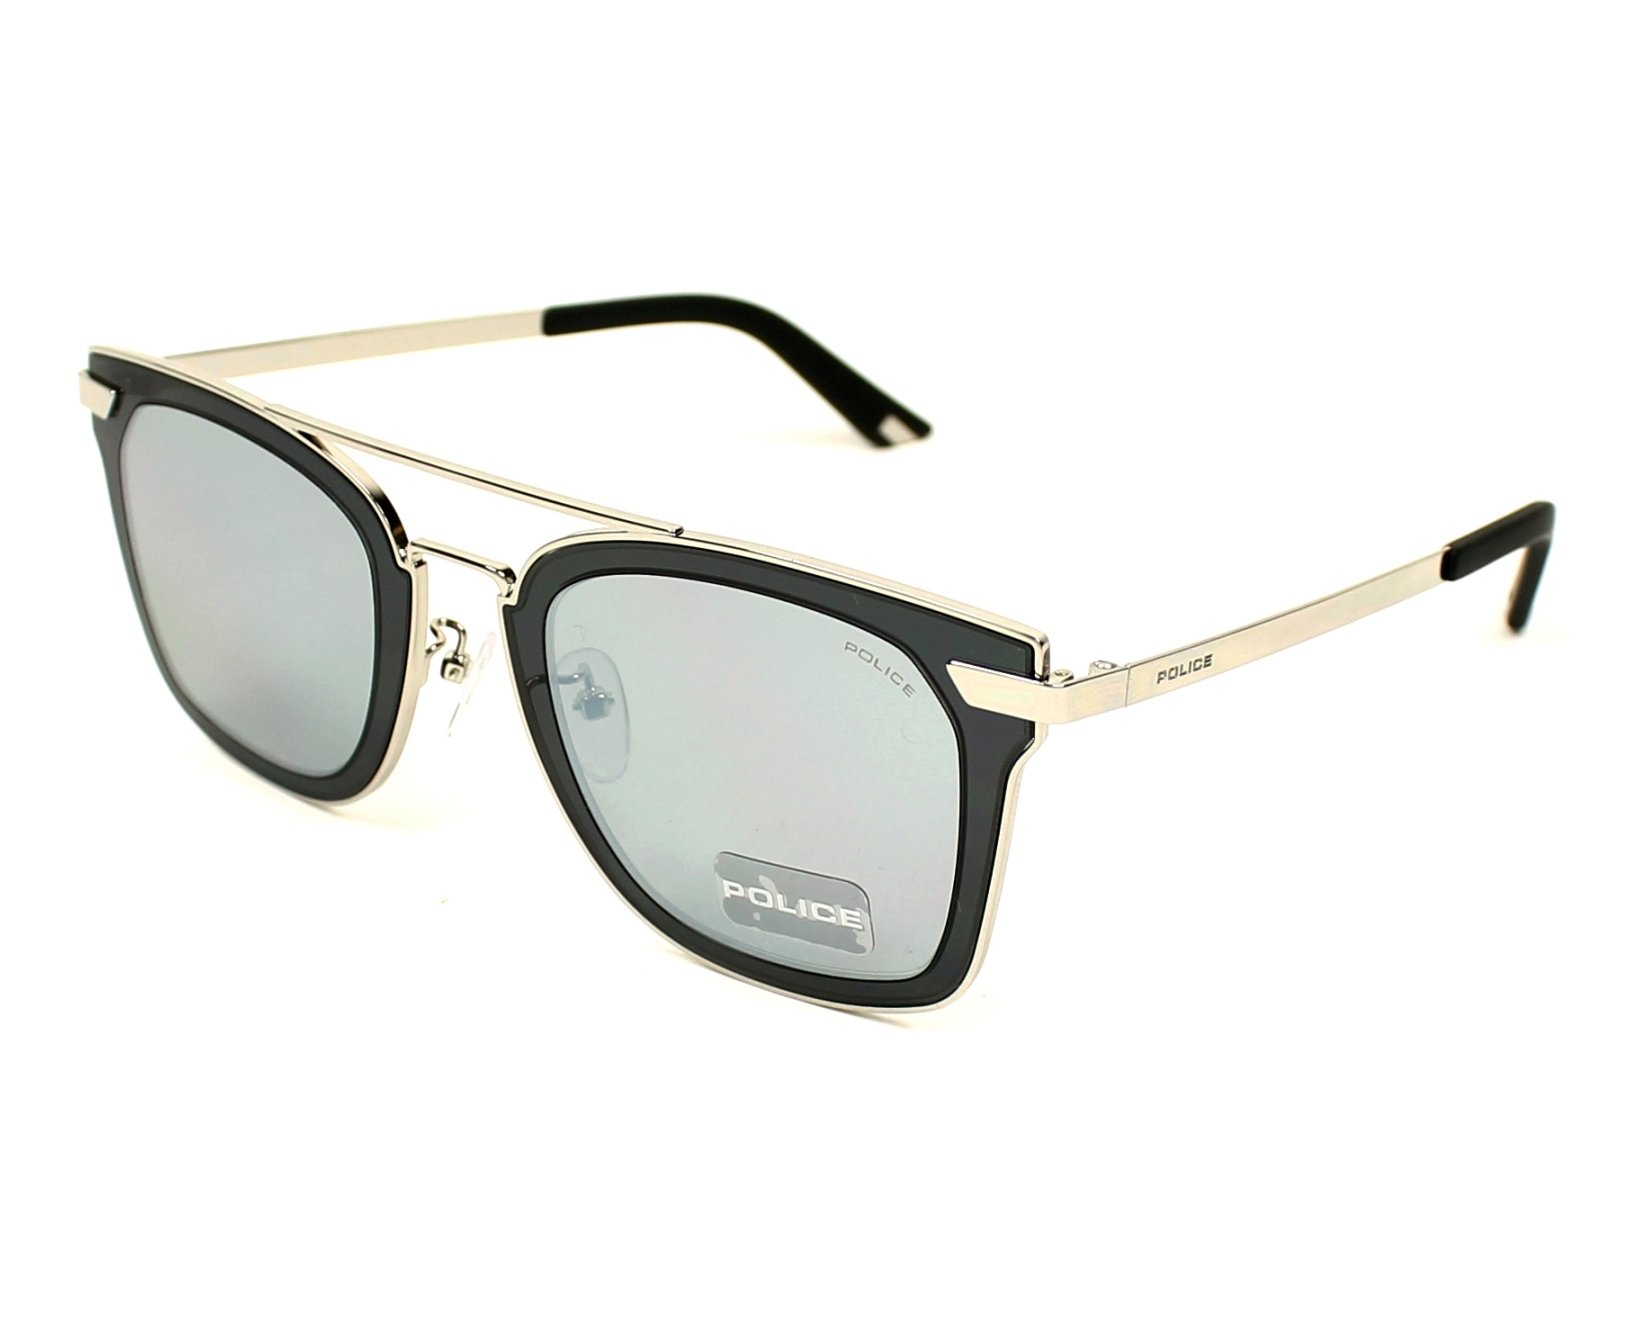 Police Sunglasses Silver With Grey Lenses Spl 348 579x Visionet Us